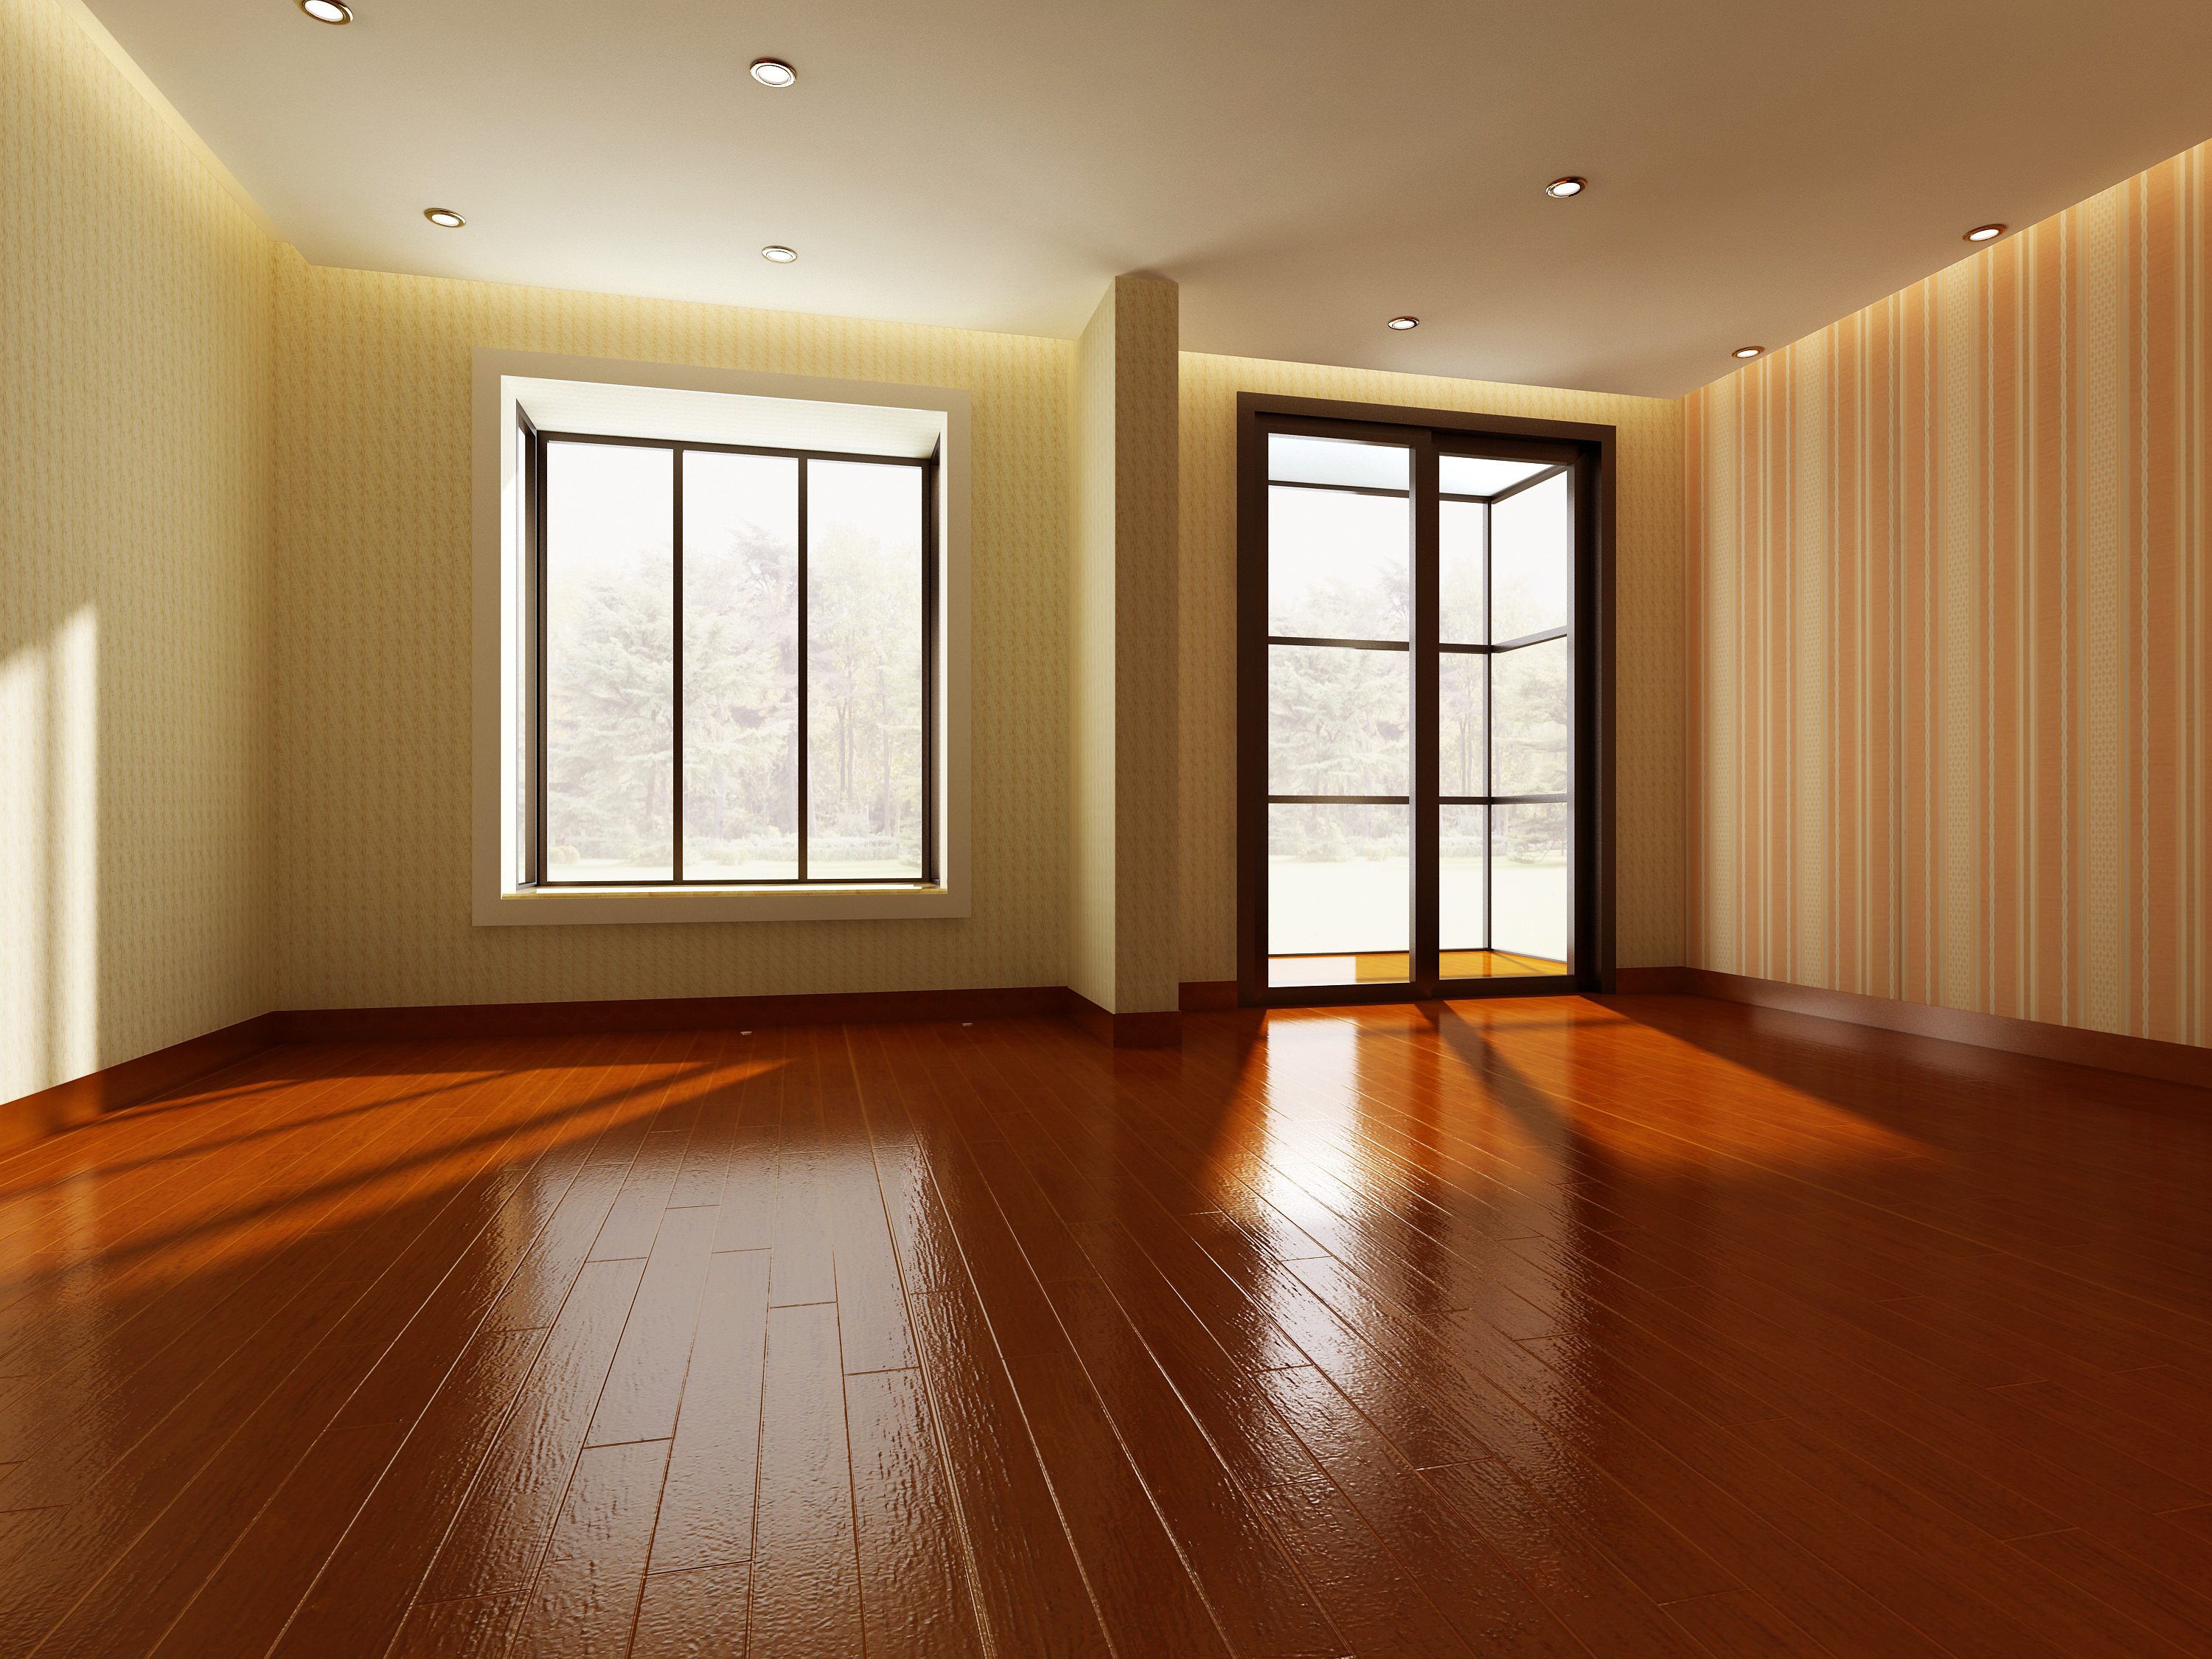 Empty room 3d model max Create a 3d room